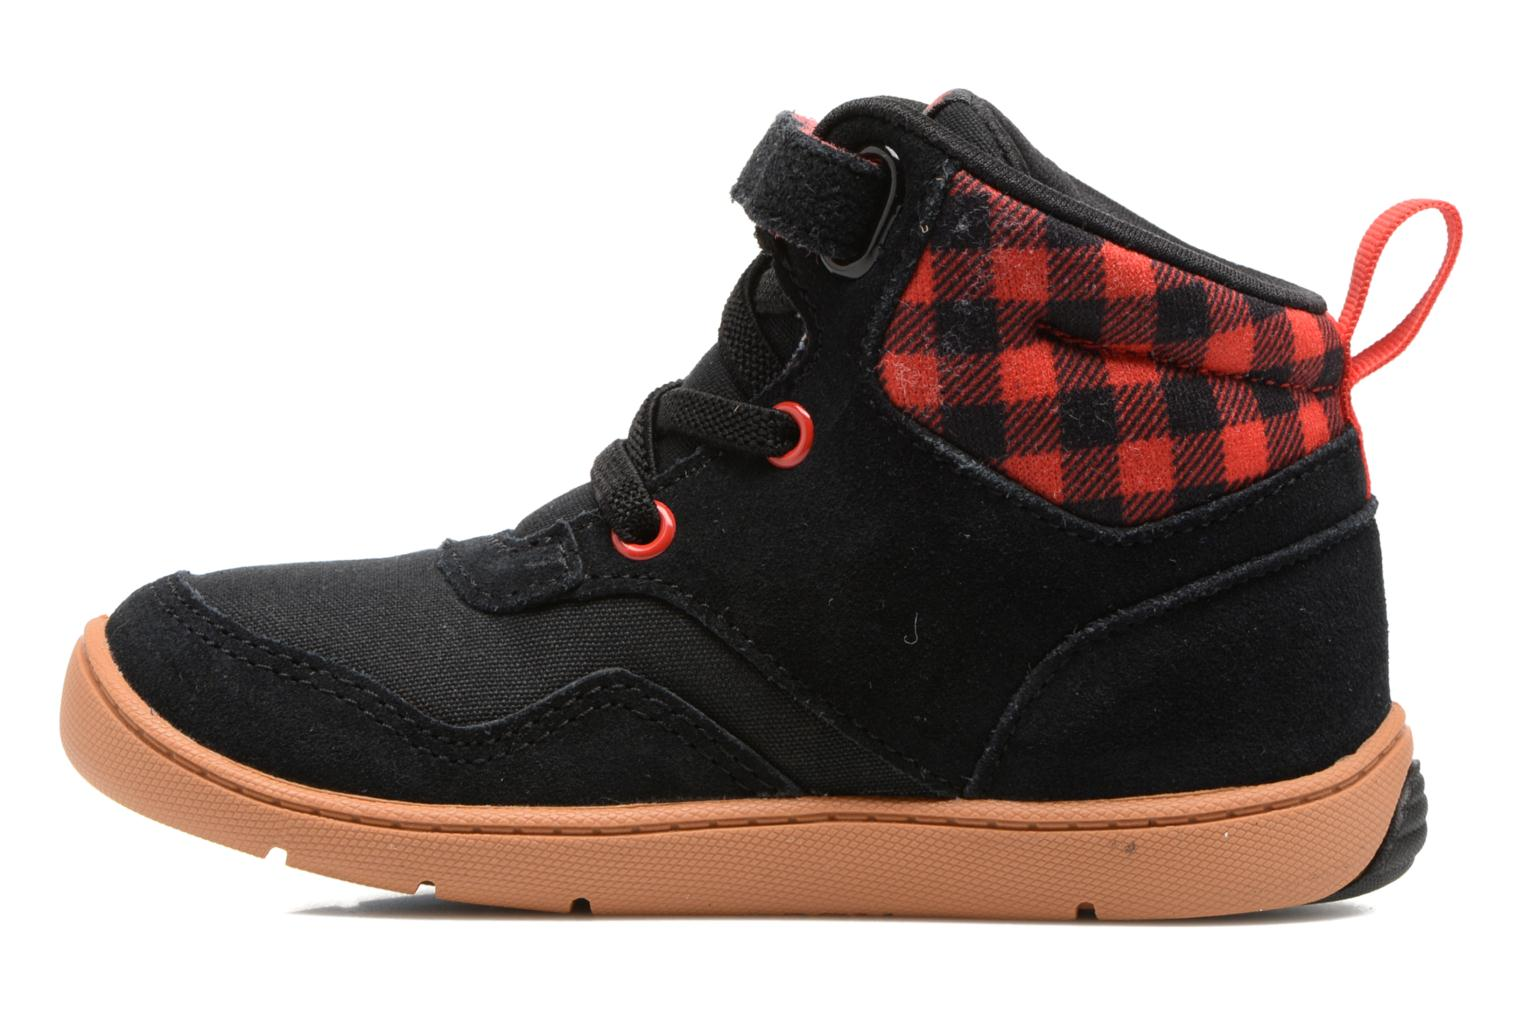 Ventureflex Sneaker Boot Black/Primal Red/White